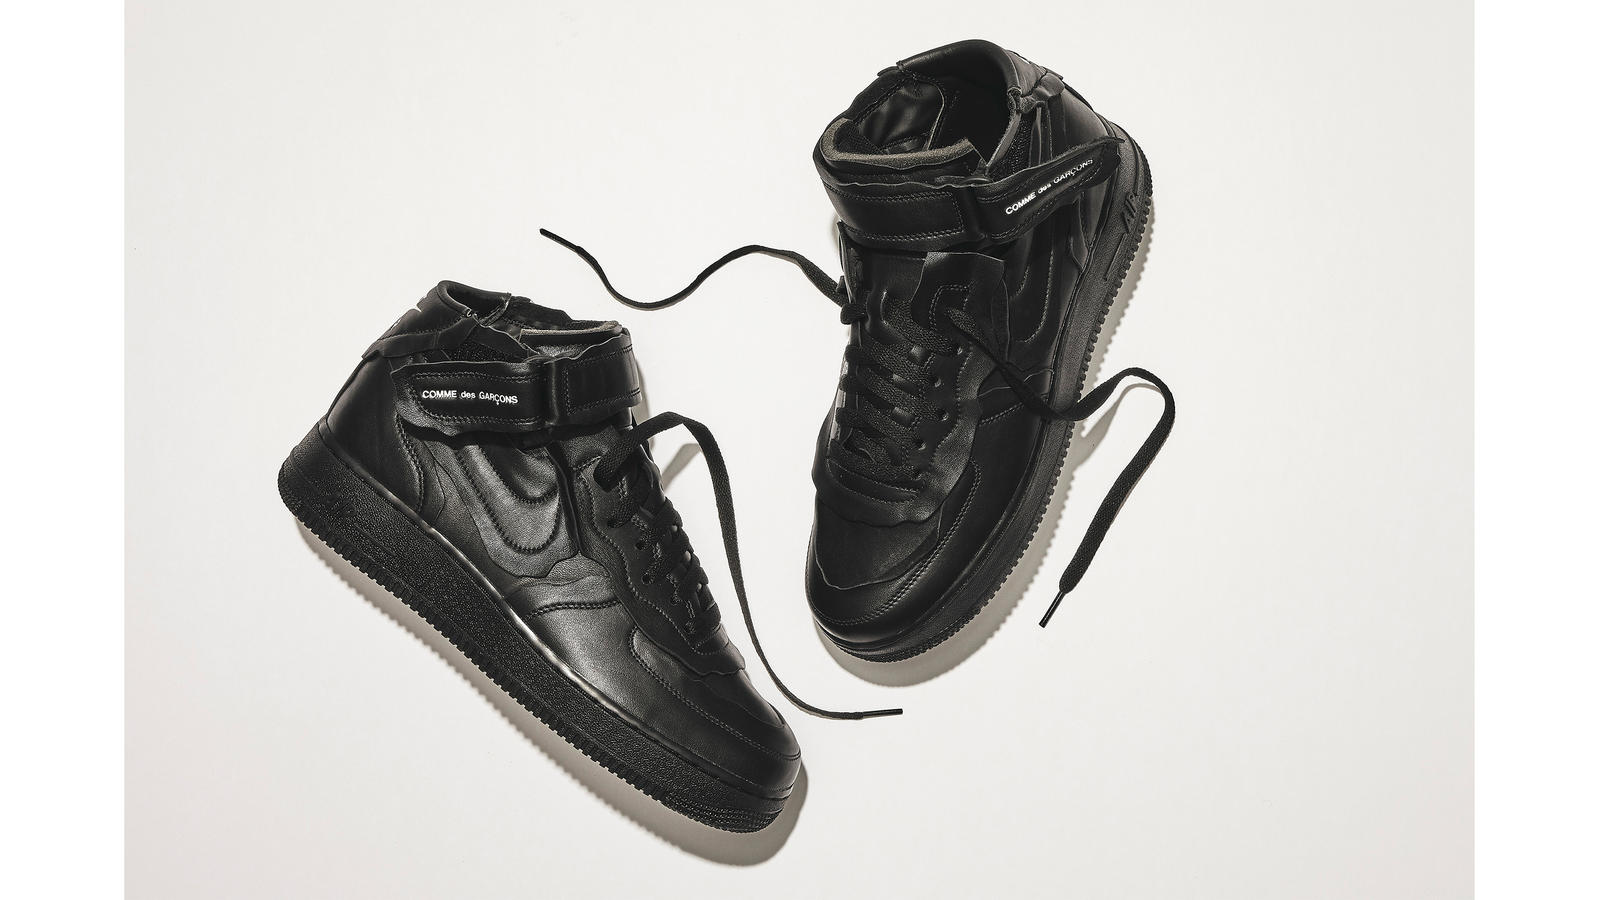 Nike COMME des GARCONS Air Force 1 Mid Official Launch Details 0